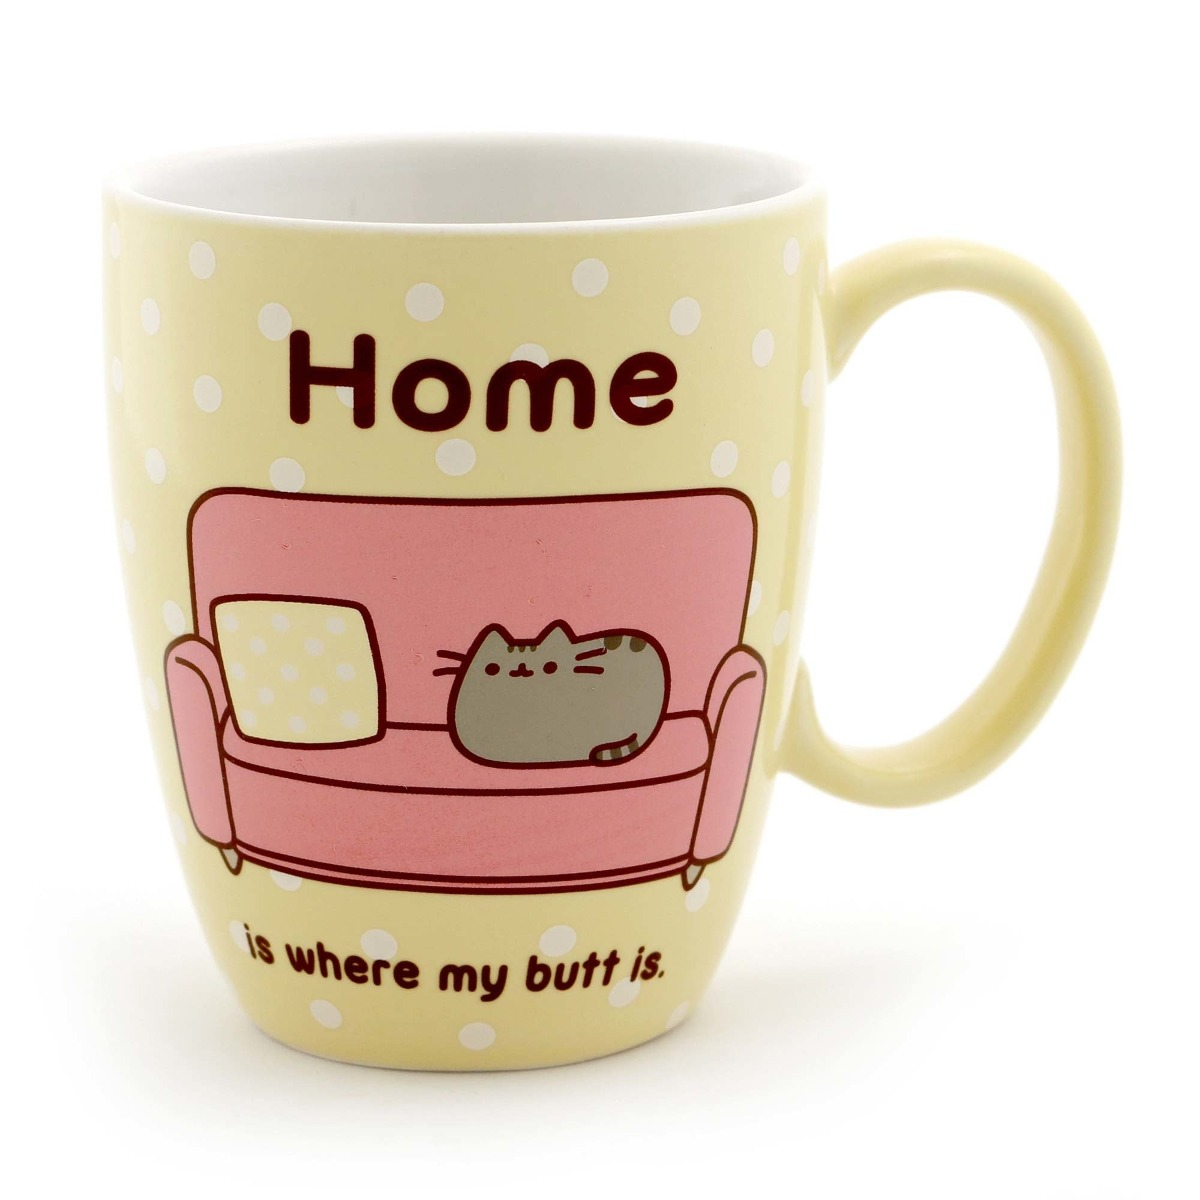 gund pusheen the cat pastel stoneware mug en mercado libre. Black Bedroom Furniture Sets. Home Design Ideas